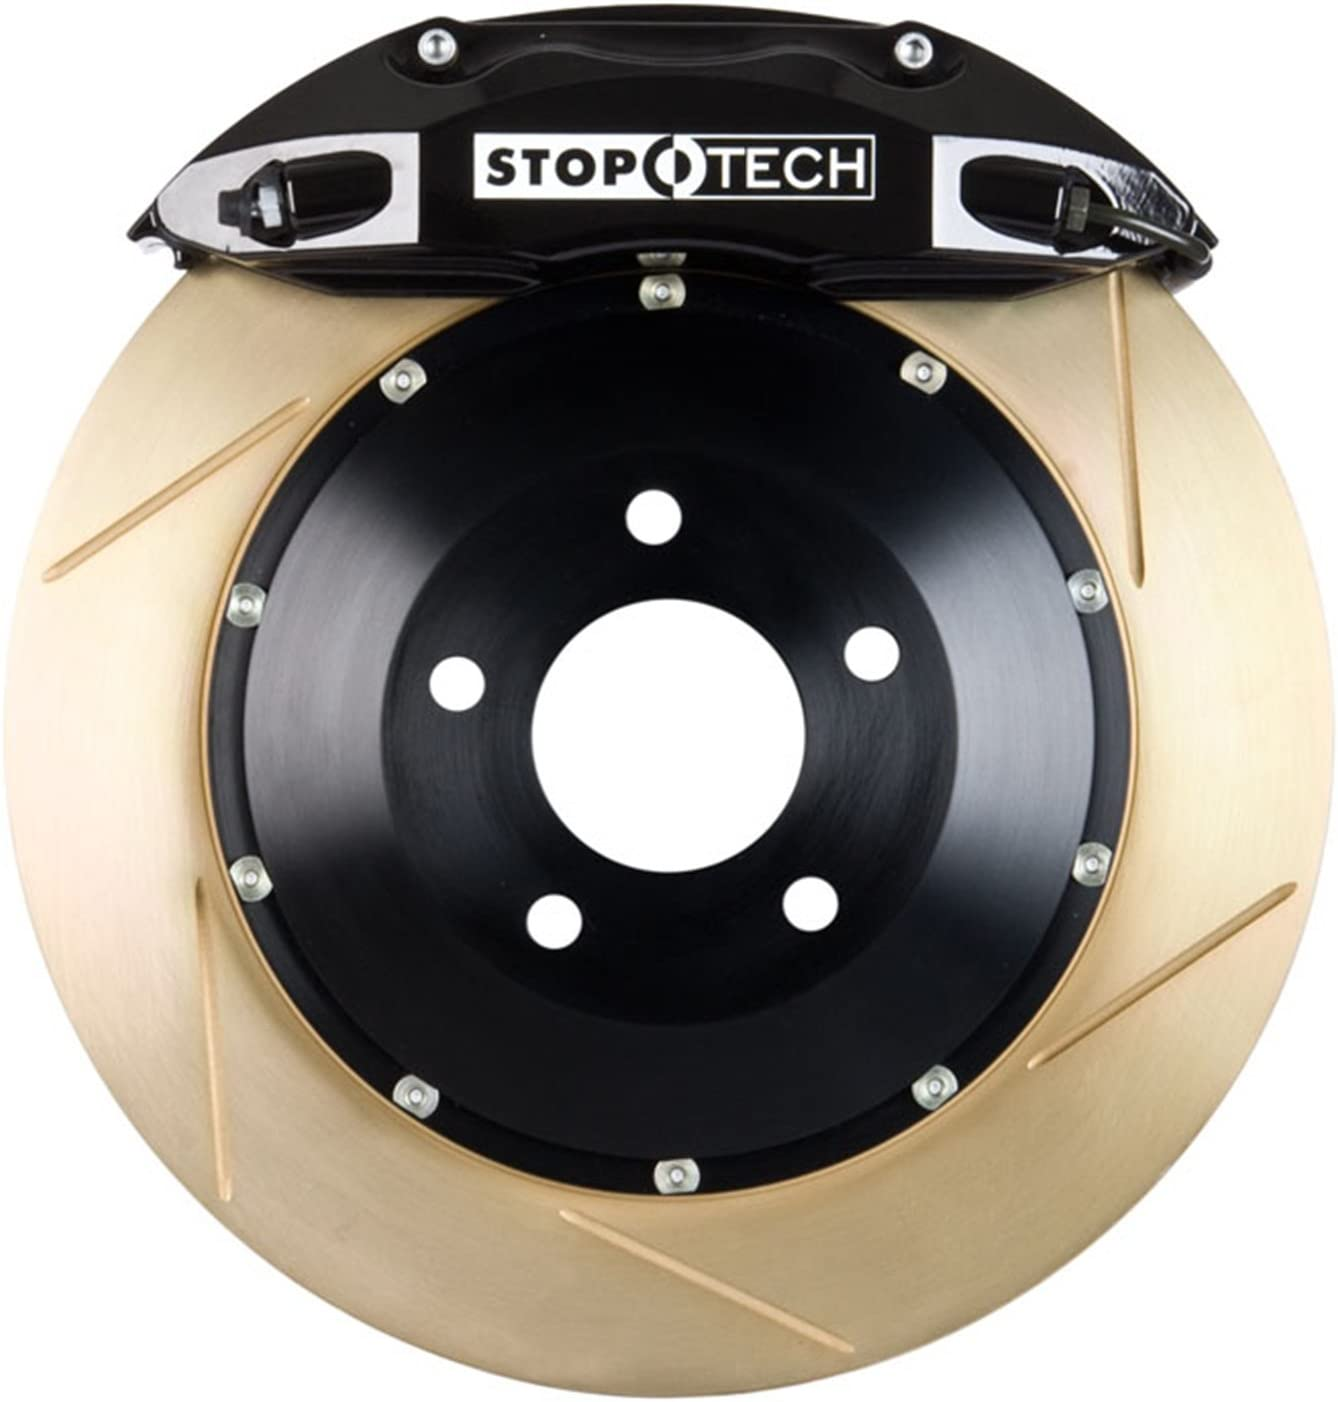 StopTech Max 83% OFF 83.791.0046.53 Big Brake Max 62% OFF Rotor Kit 2 1 P Piece Rear